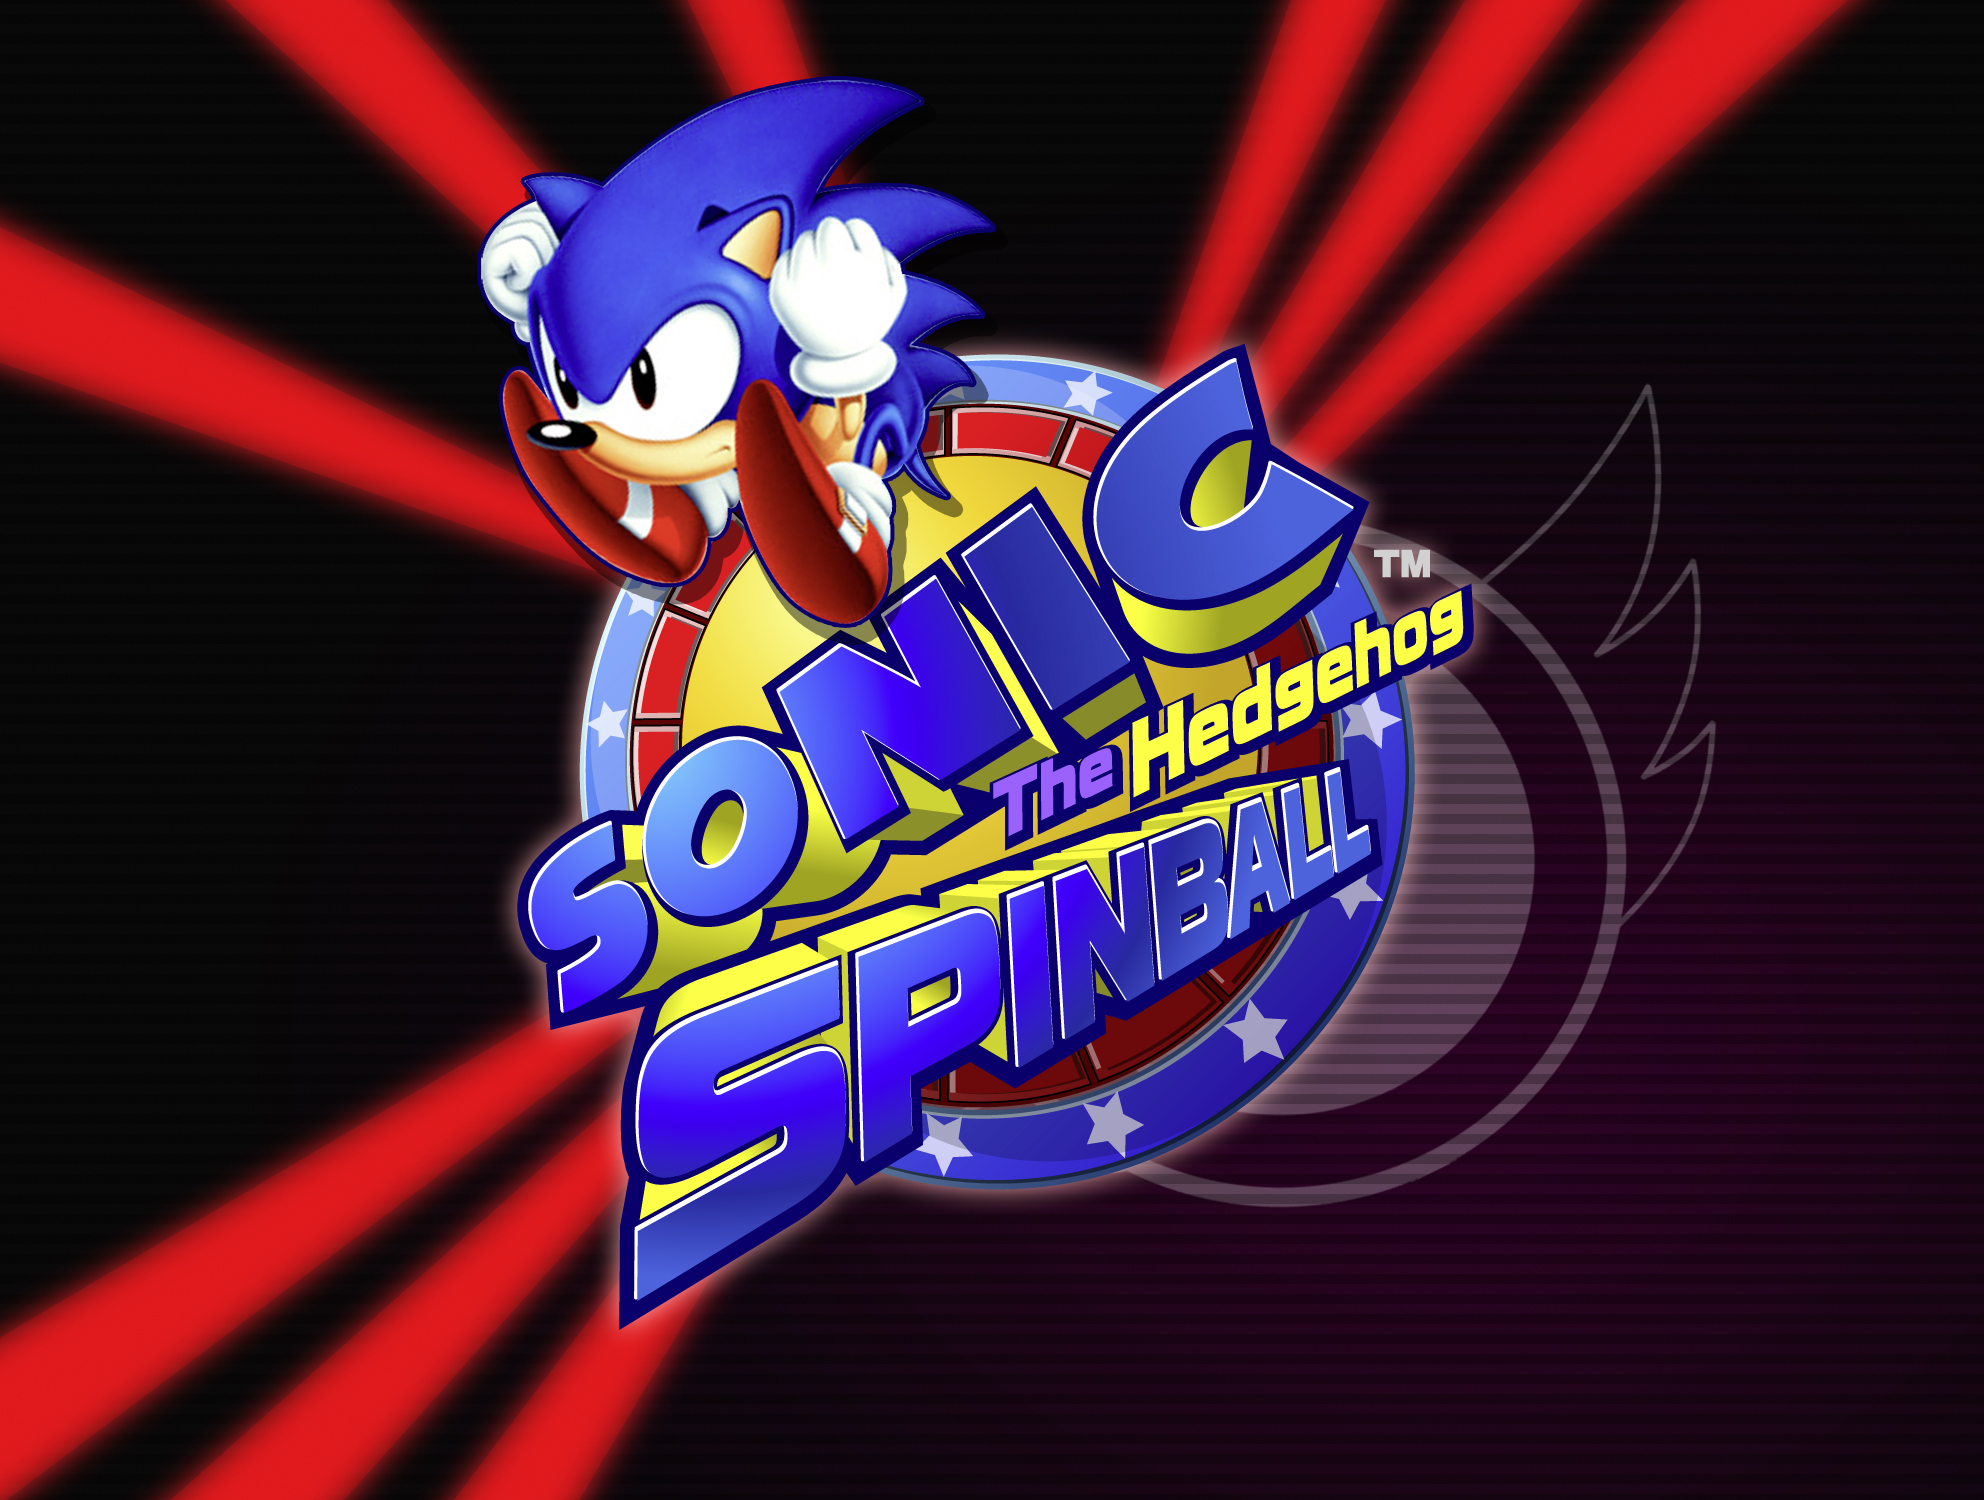 Lost In A Sonic Spinball K Hole Fun With Bonus